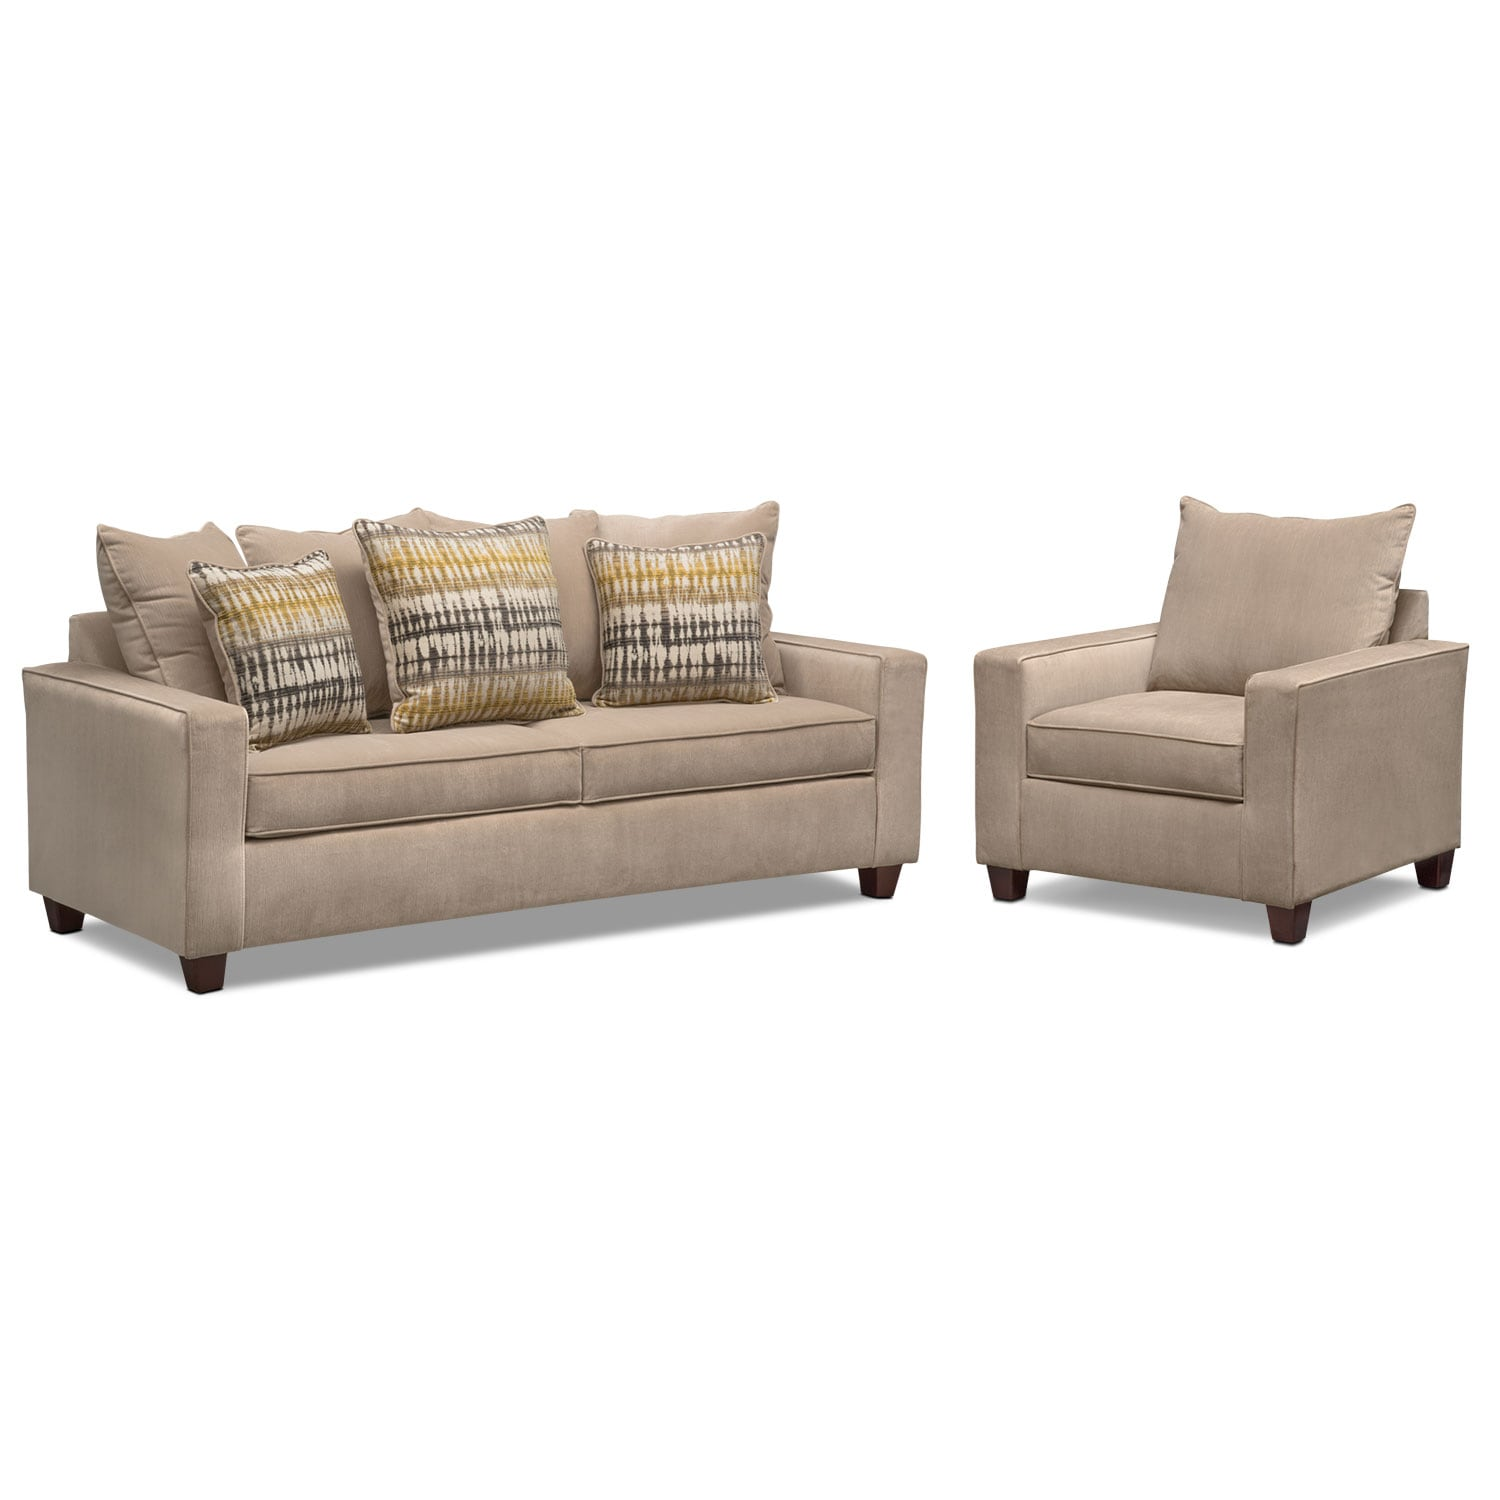 Living Room Furniture - Bryden Sofa and Chair Set - Beige